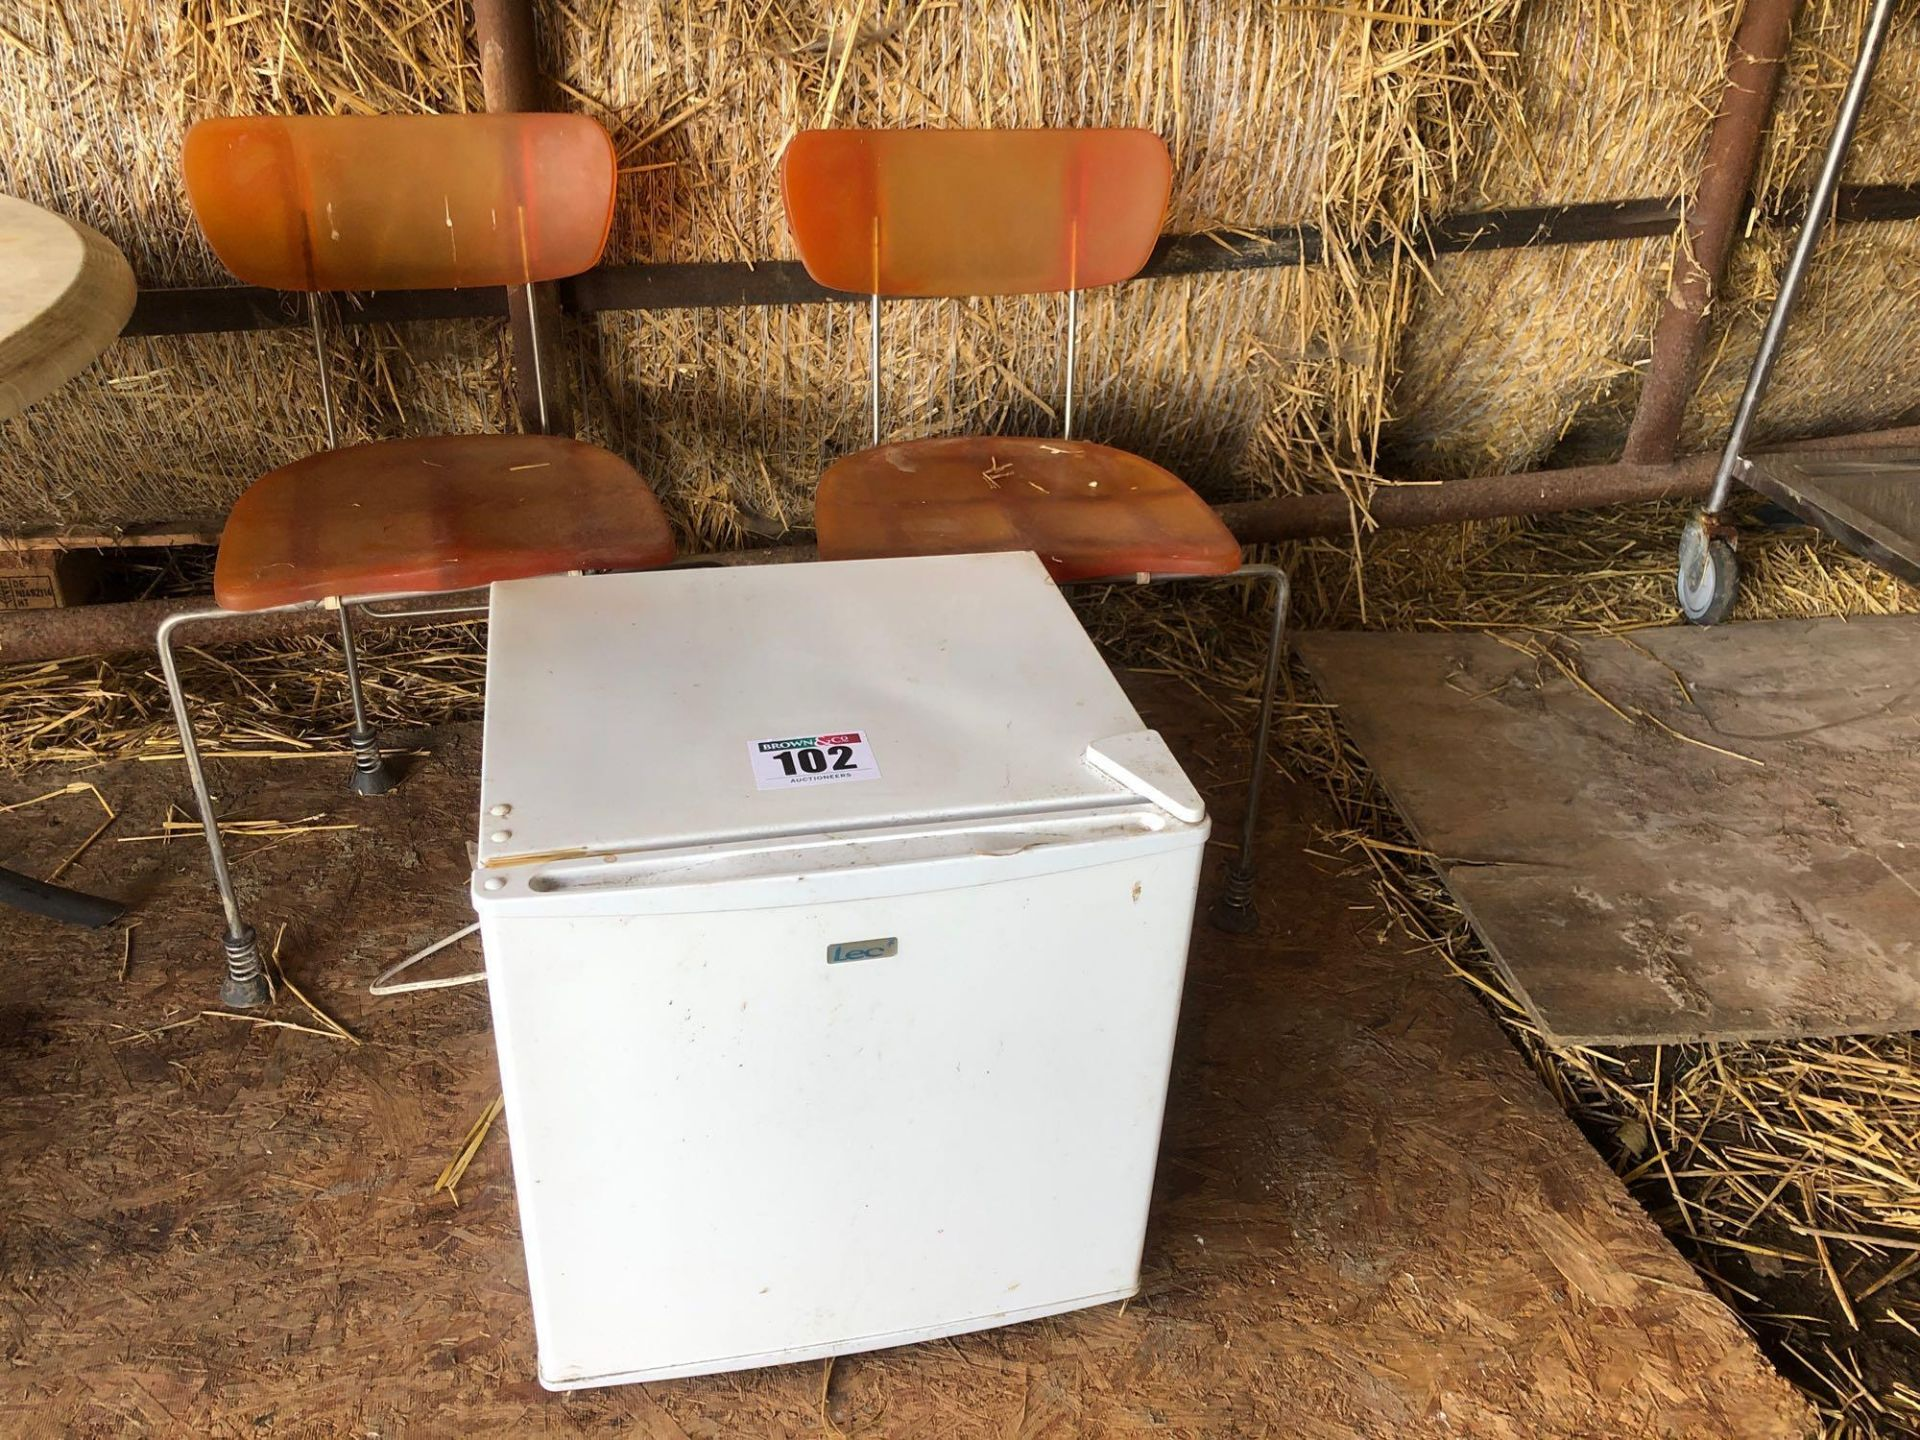 Lot 102 - Quantity chairs and mini fridge